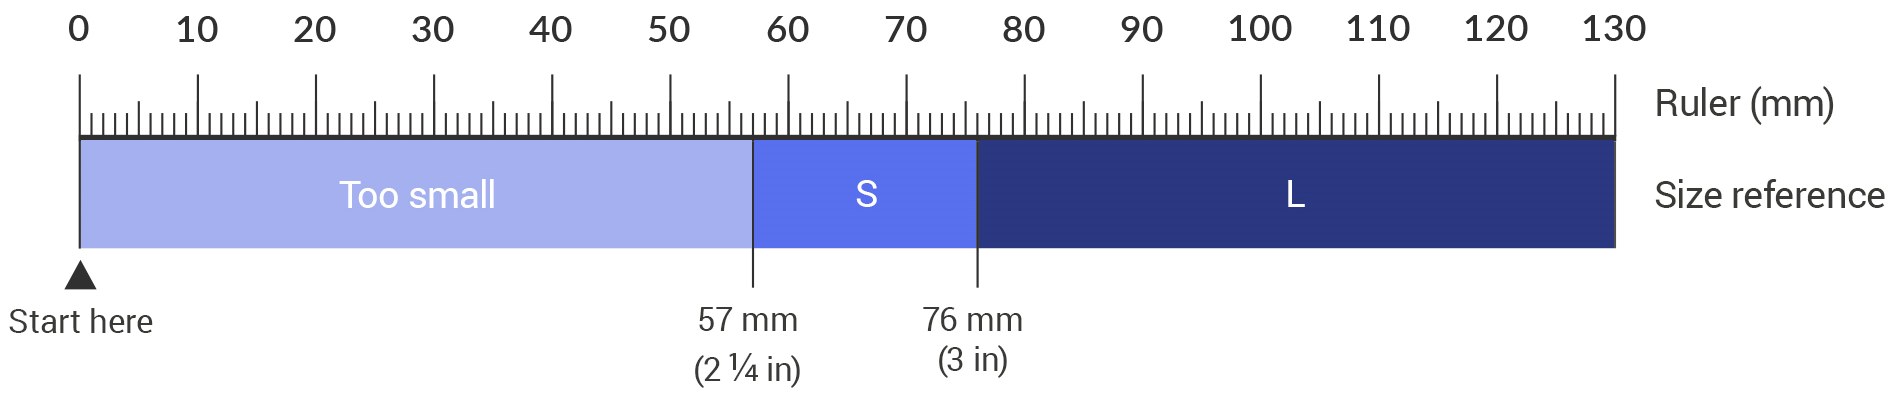 You may also print this ruler to measure your hands width. Place the end of your hand next to the start here marker and see which strap will be more comfortable for you